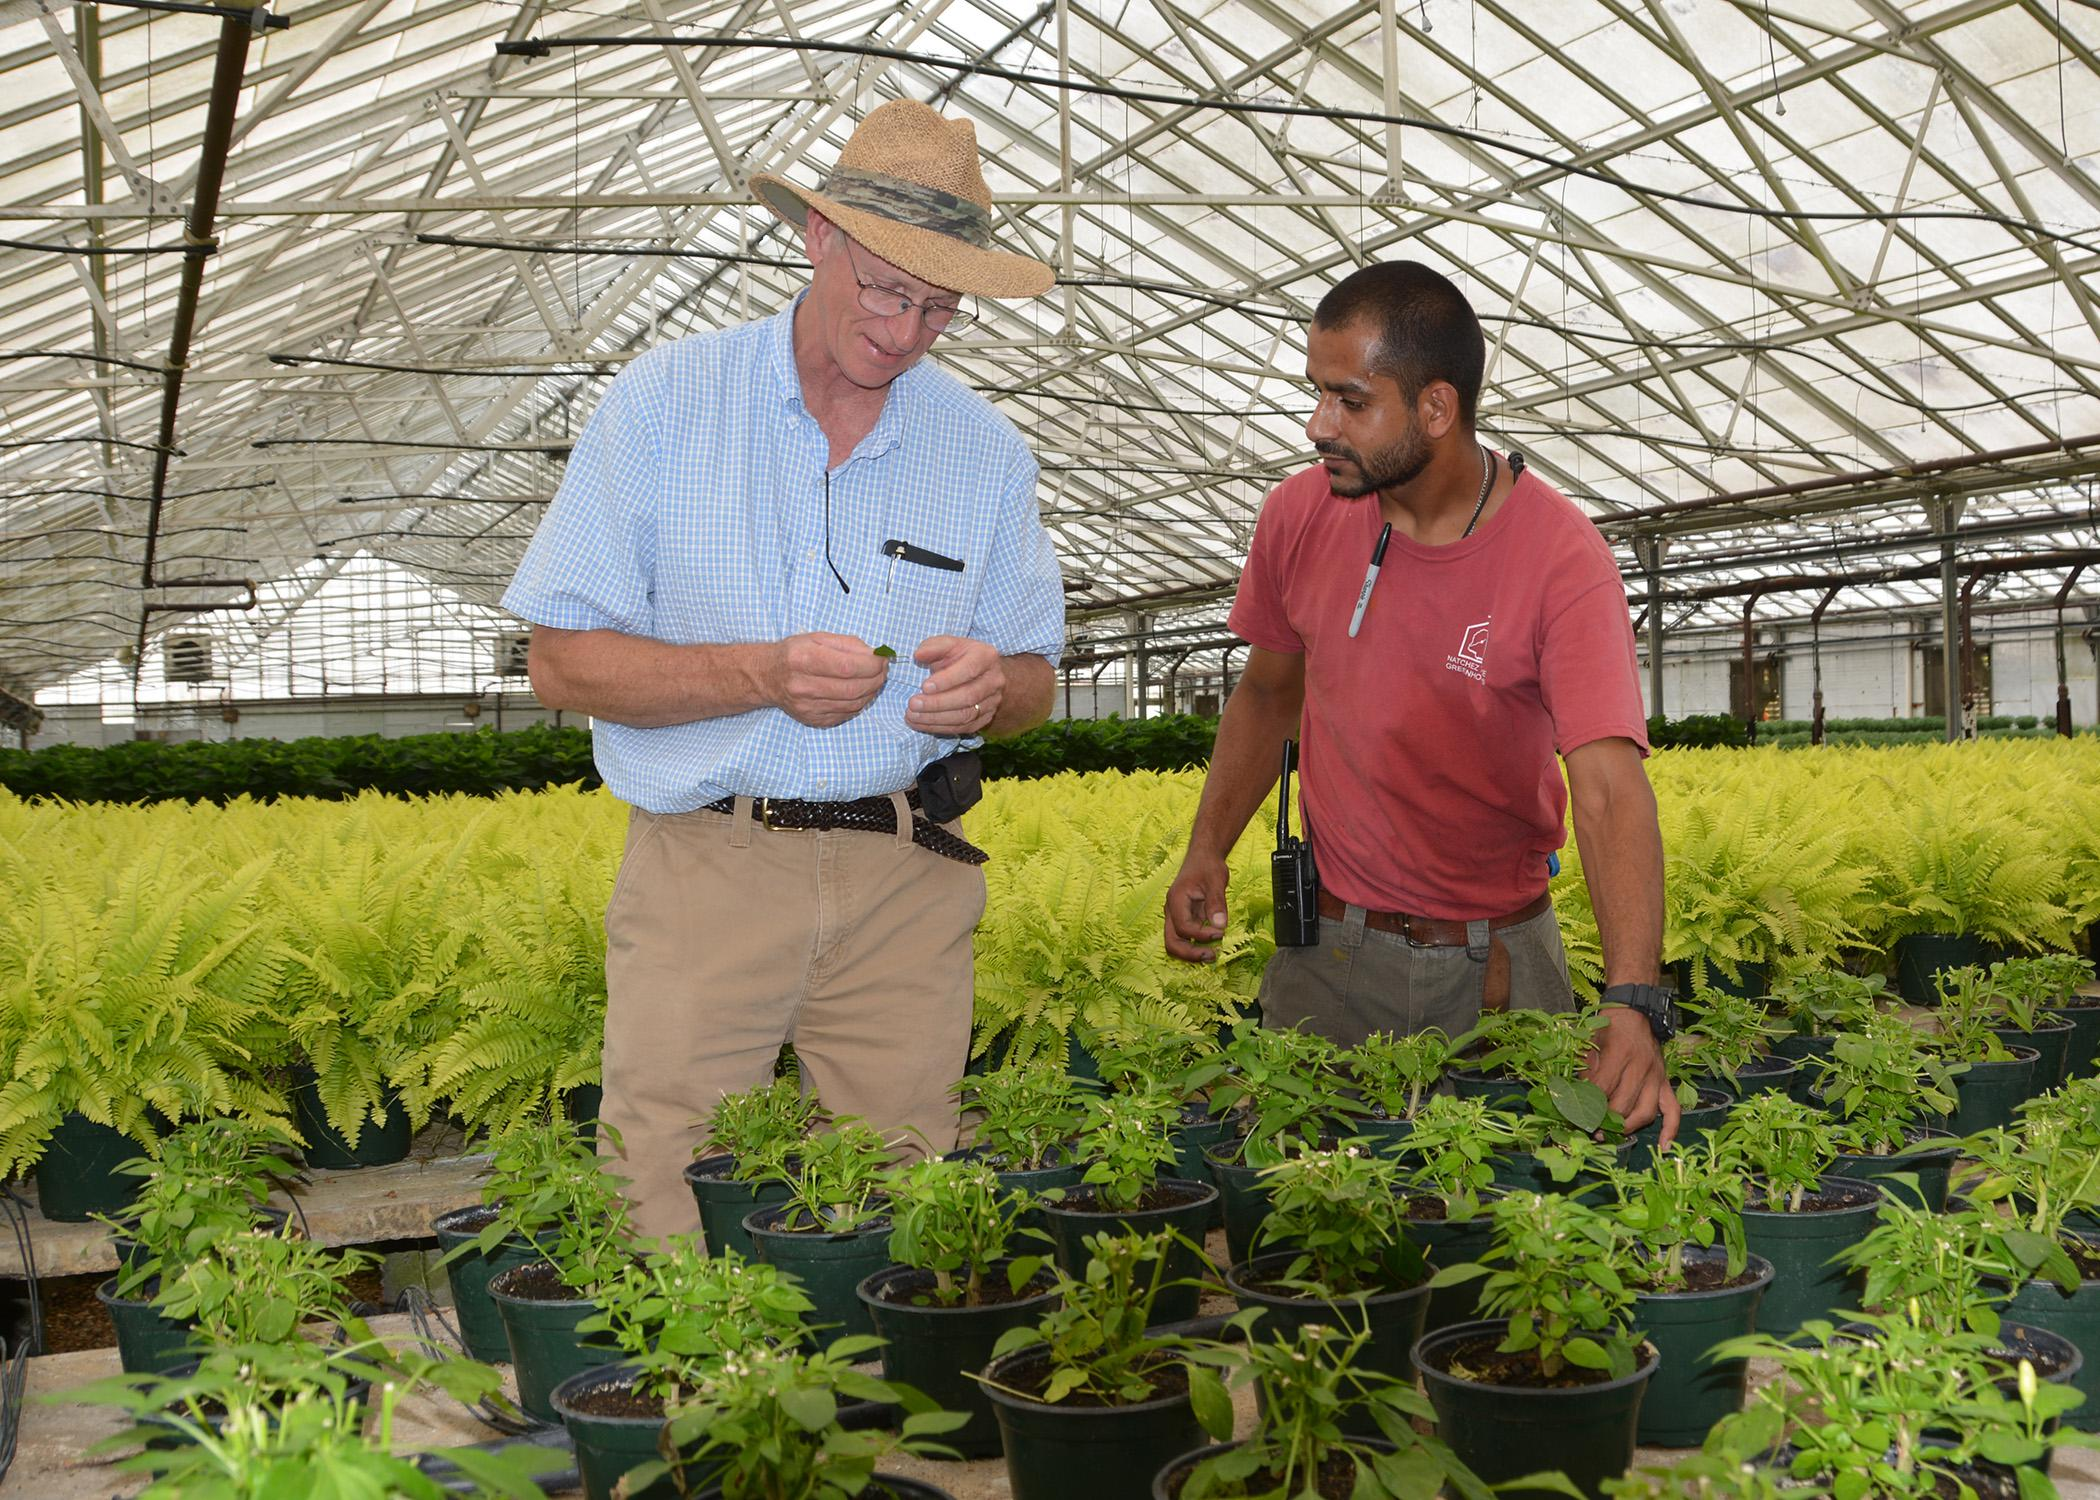 Blake Layton, entomologist with the Mississippi State University Extension Service (left), and Nick Terkanian of the Natchez Trace Greenhouses in Kosciusko, Mississippi, examine Red Missile peppers for swirski-mites on Aug. 19, 2014. (Photo by MSU Ag Communications/Linda Breazeale)